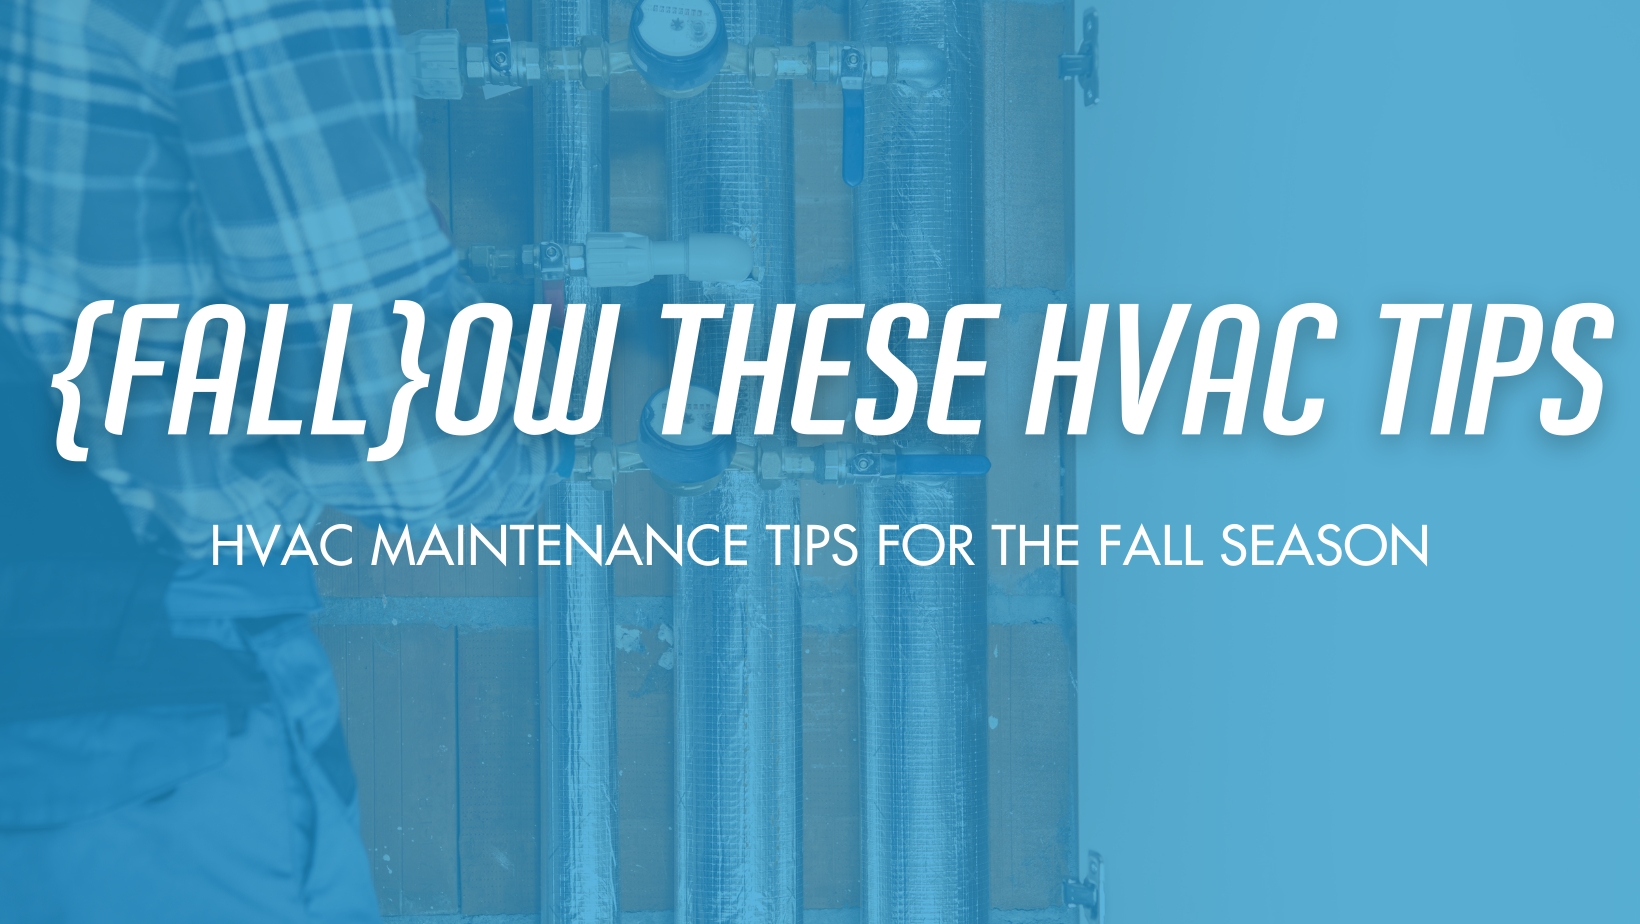 Ease Air Provides 5 HVAC Tips for Fall